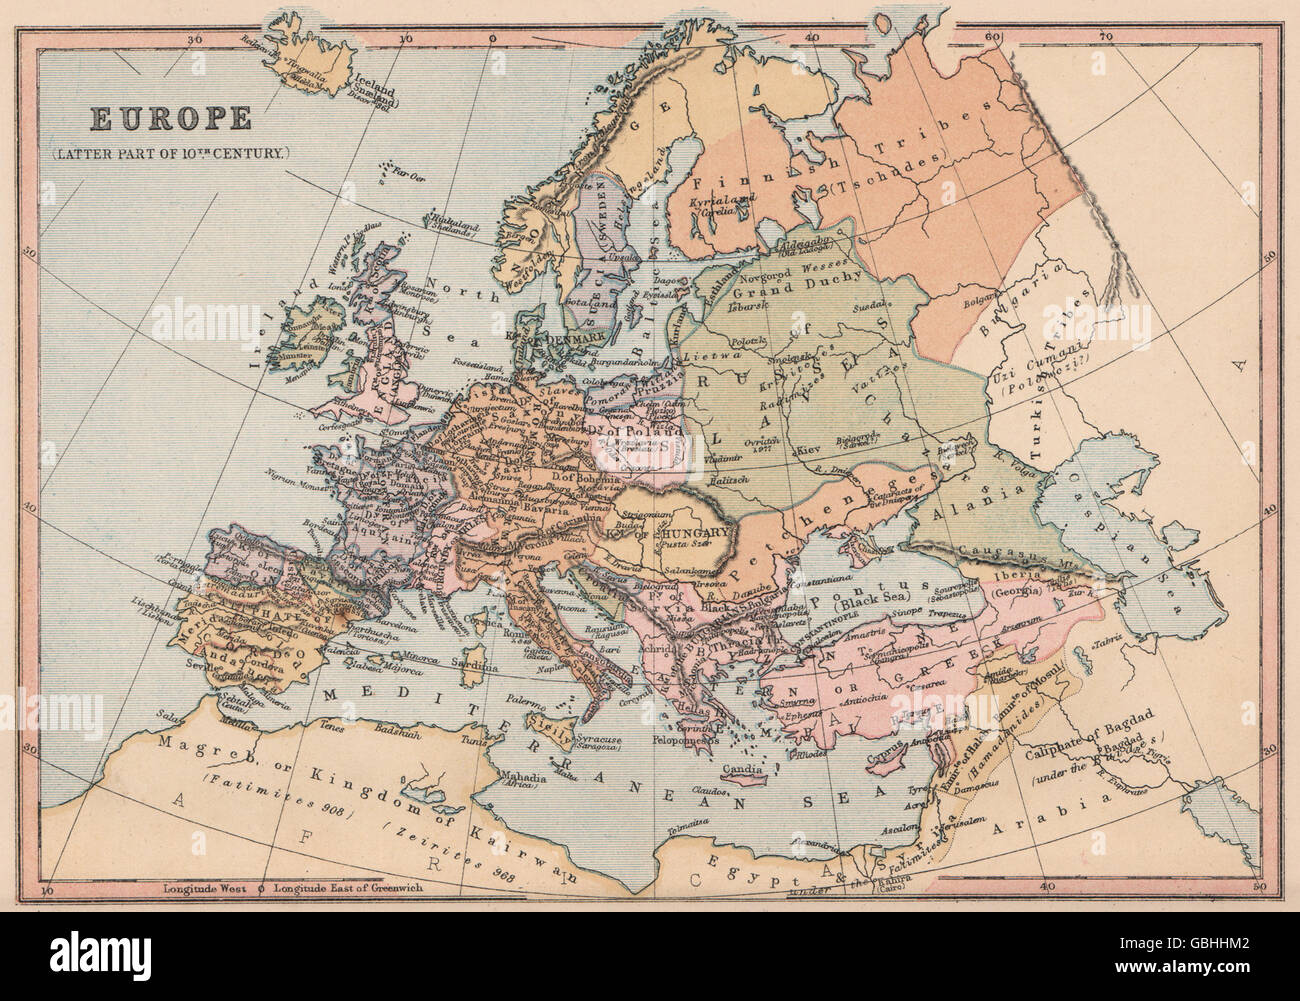 10TH CENTURY EUROPE: Holy Roman Empire Caliphate of Cordoba. COLLINS, 1880 map Stock Photo